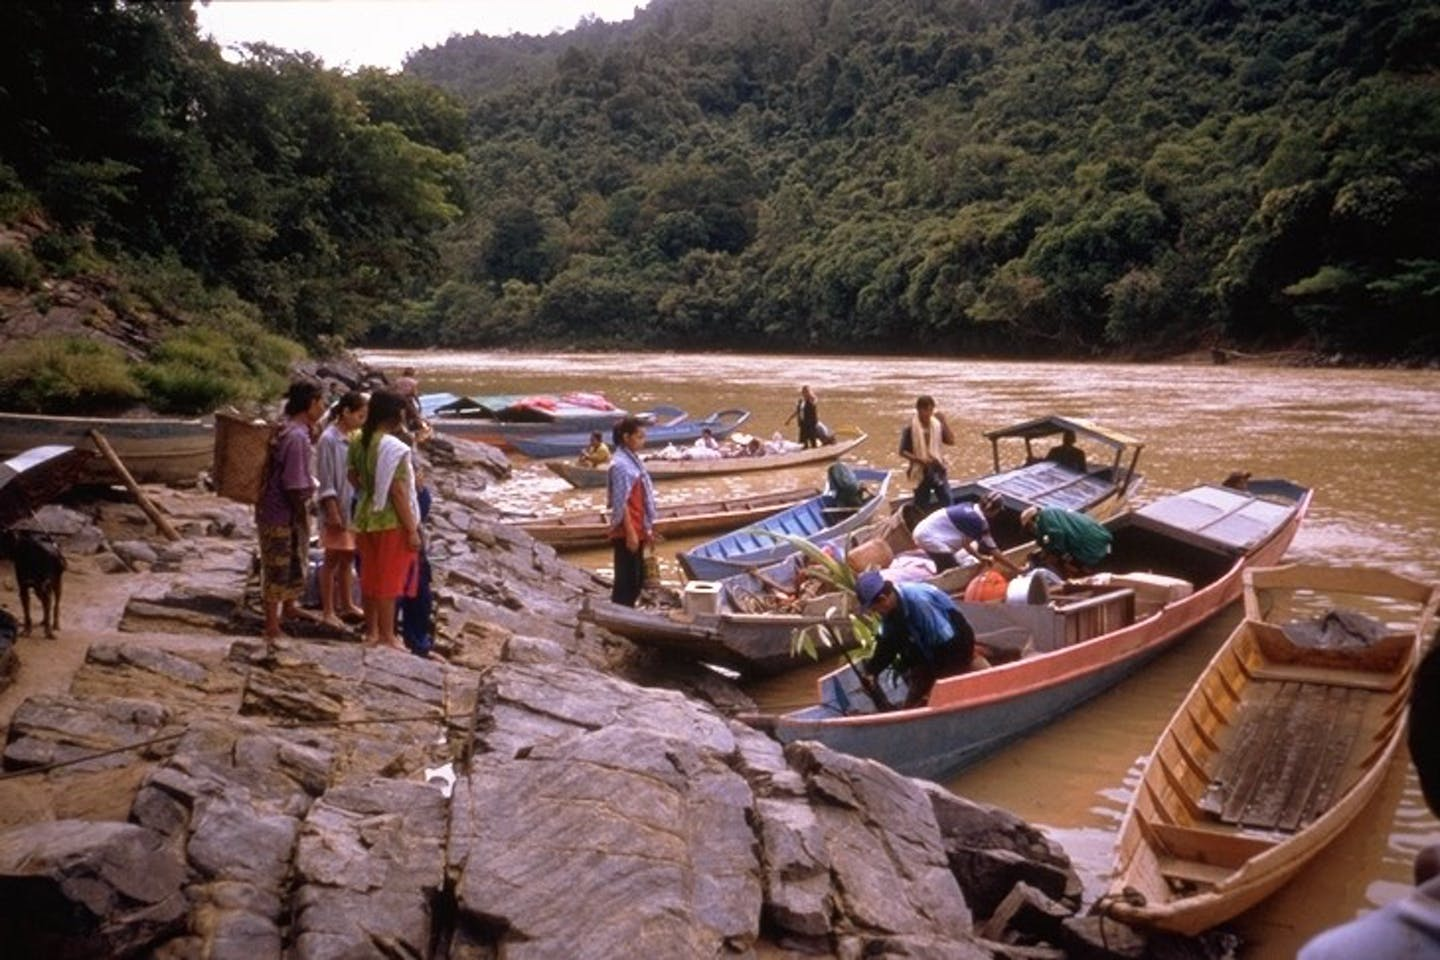 indigenous people, Malaysian Borneo, displacement